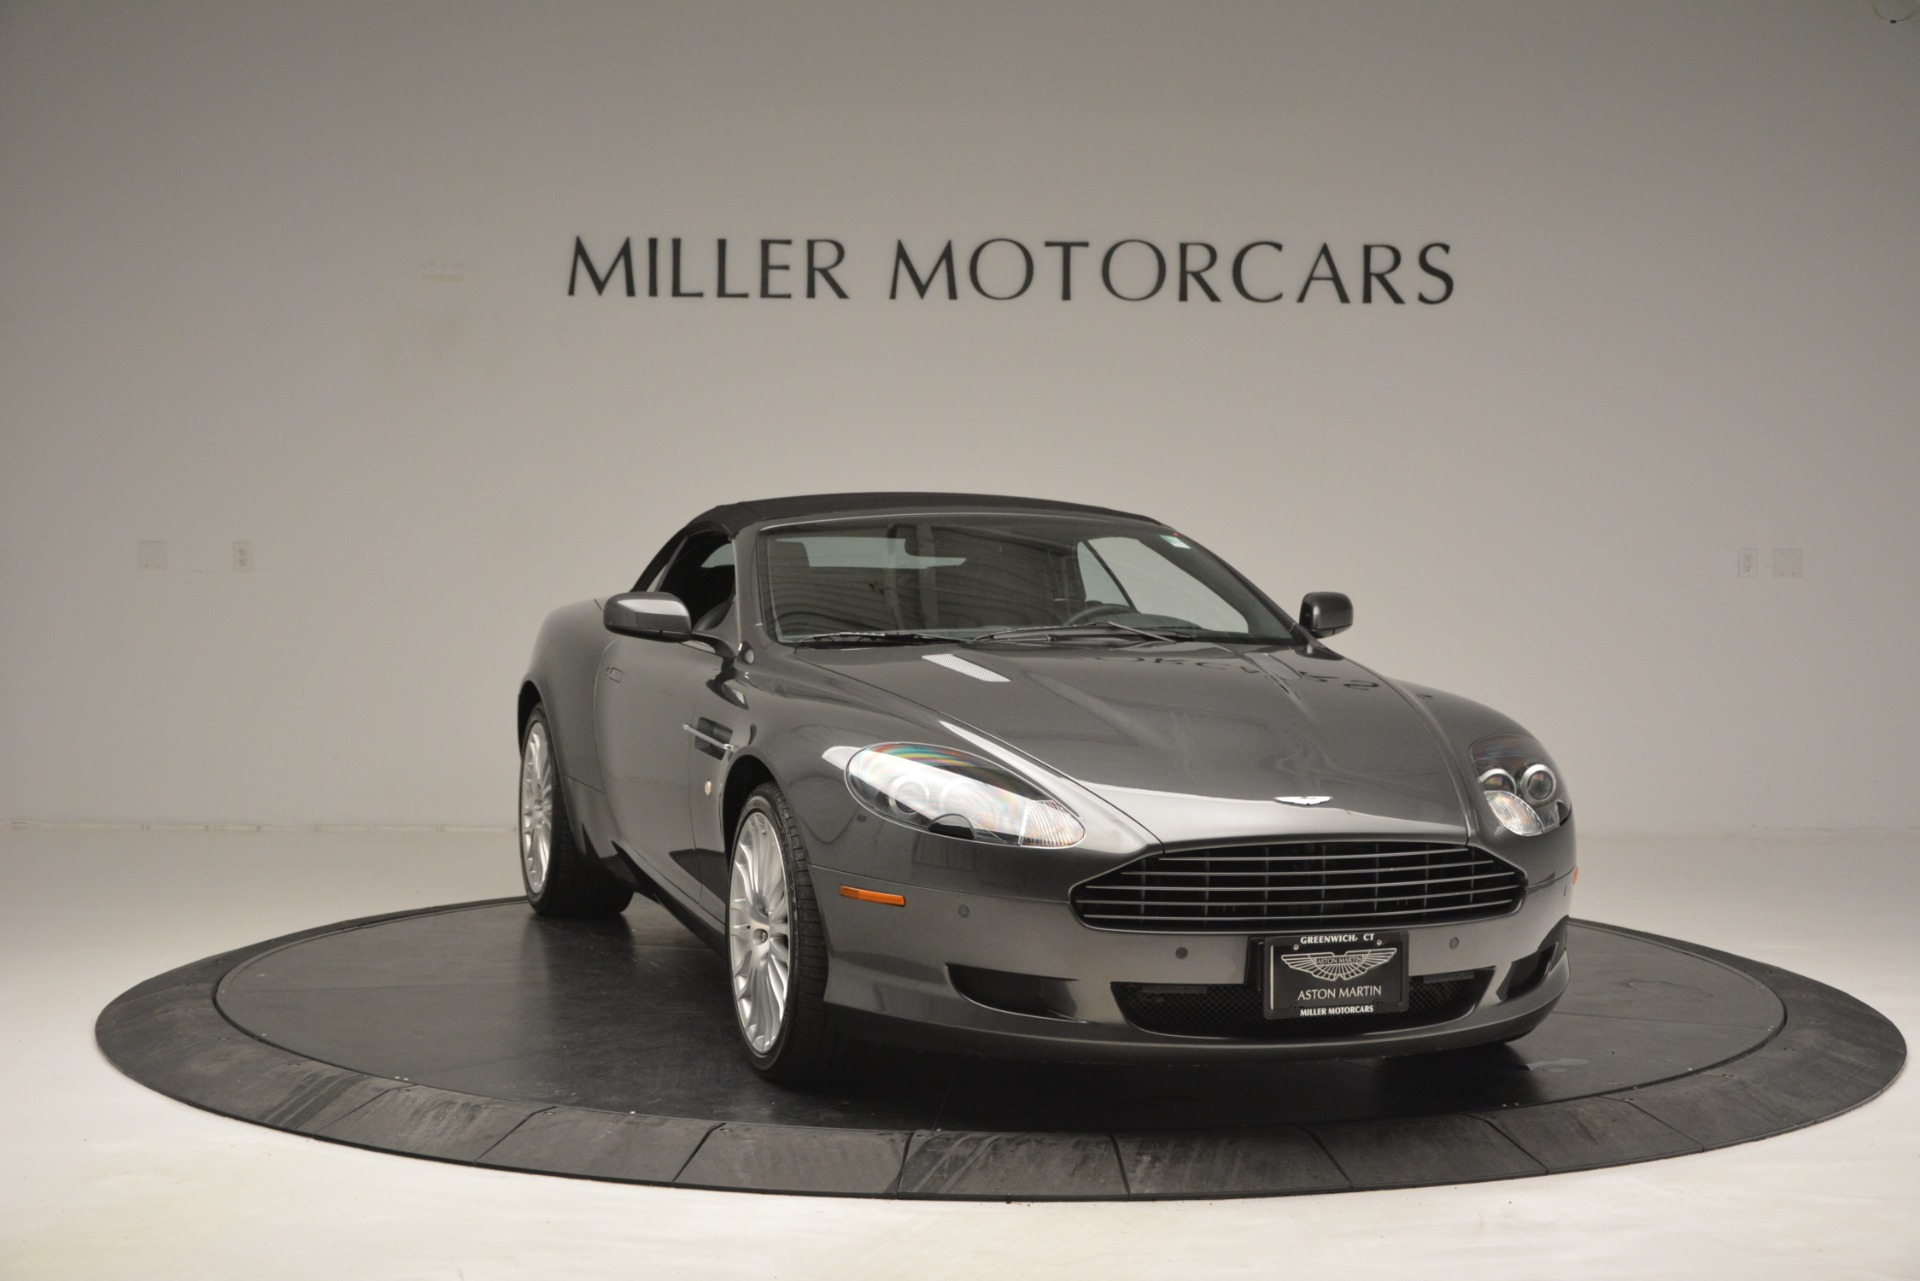 Used 2009 Aston Martin DB9 Convertible For Sale In Greenwich, CT. Alfa Romeo of Greenwich, 7468 2930_p15